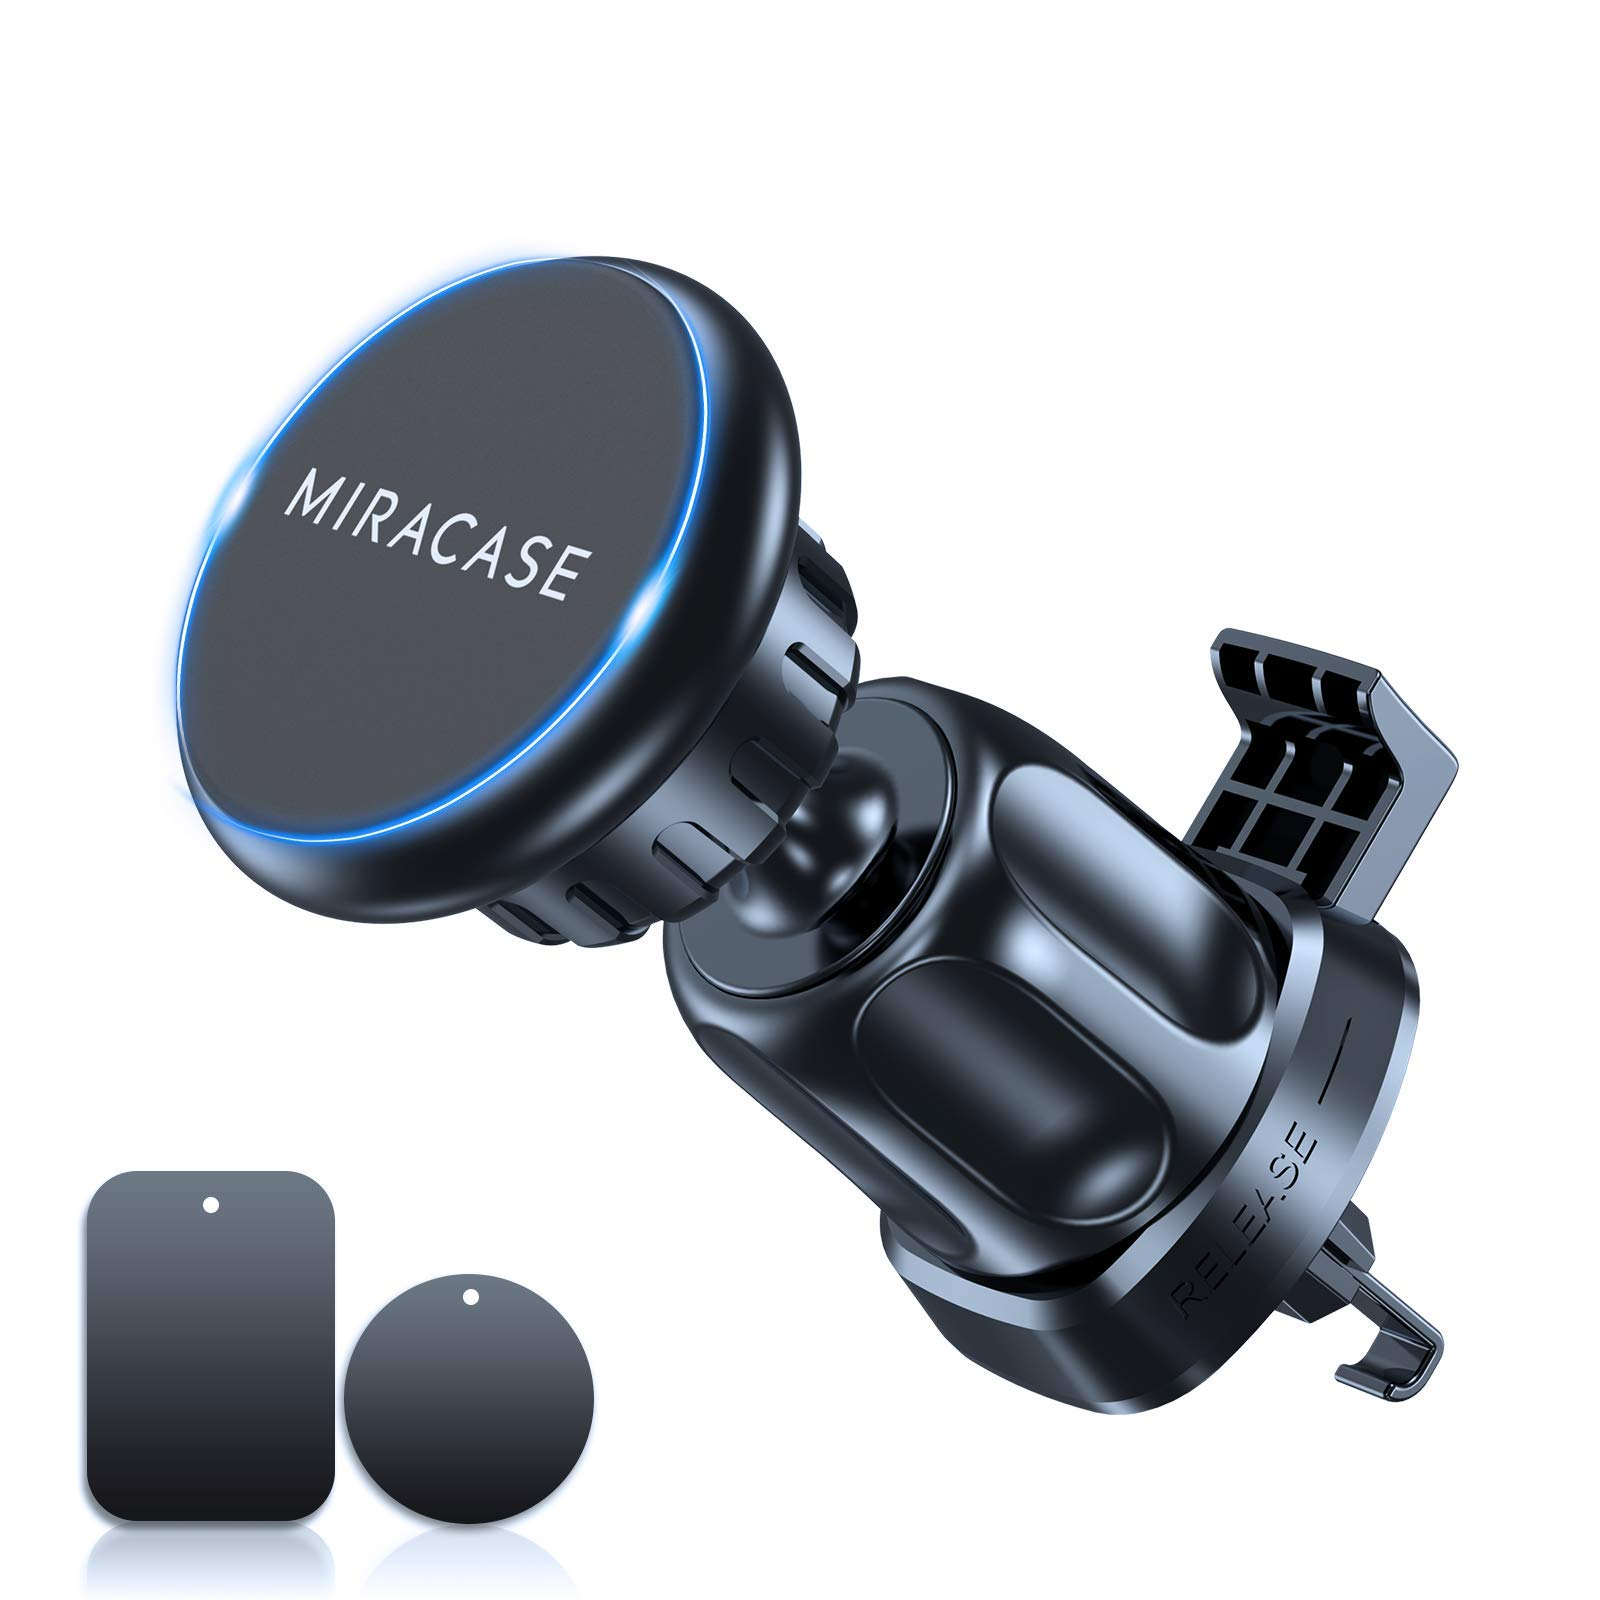 Miracase Magnetic Phone Holder for Car,2nd Generation Universal Hands Free Car Phone Mount, Air Vent Cell Phone Holder for All Phones